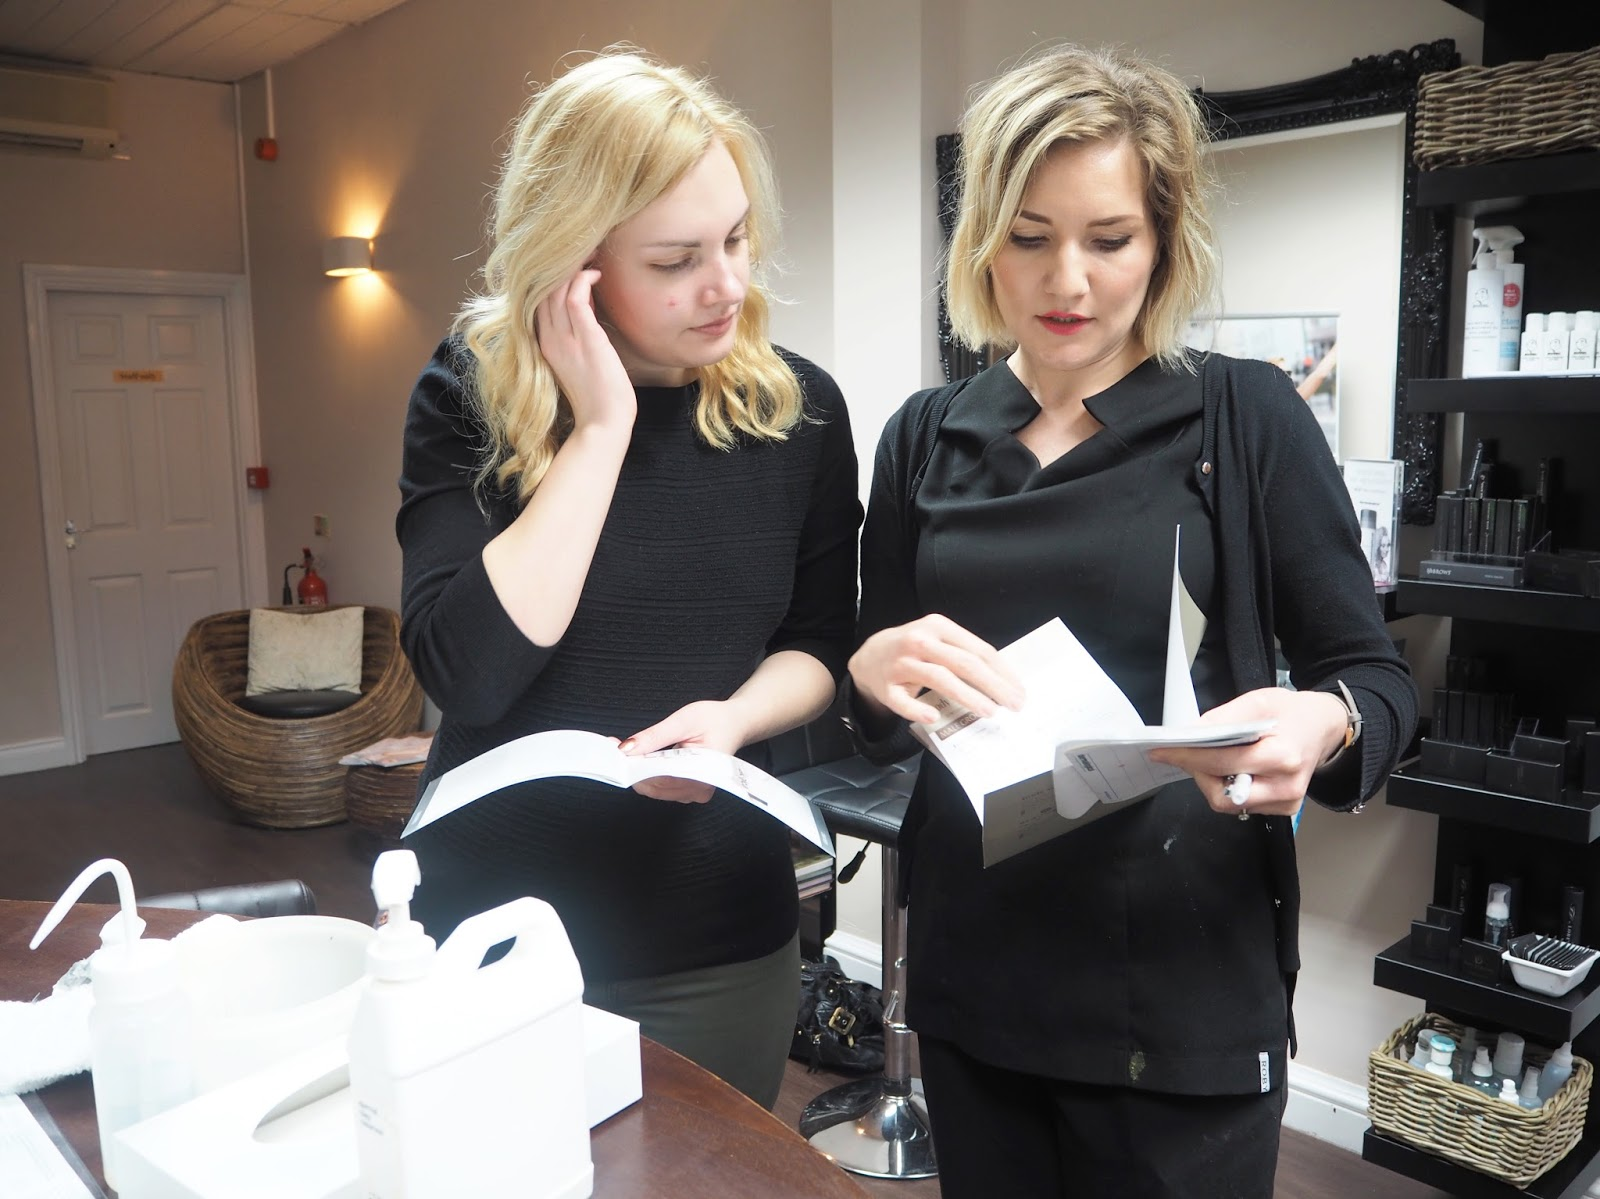 Dermalogica Face Mapping Skin Analysis, Beauty Blogger, UK Blogger, Skincare Review, Dermalogica Skincare Products